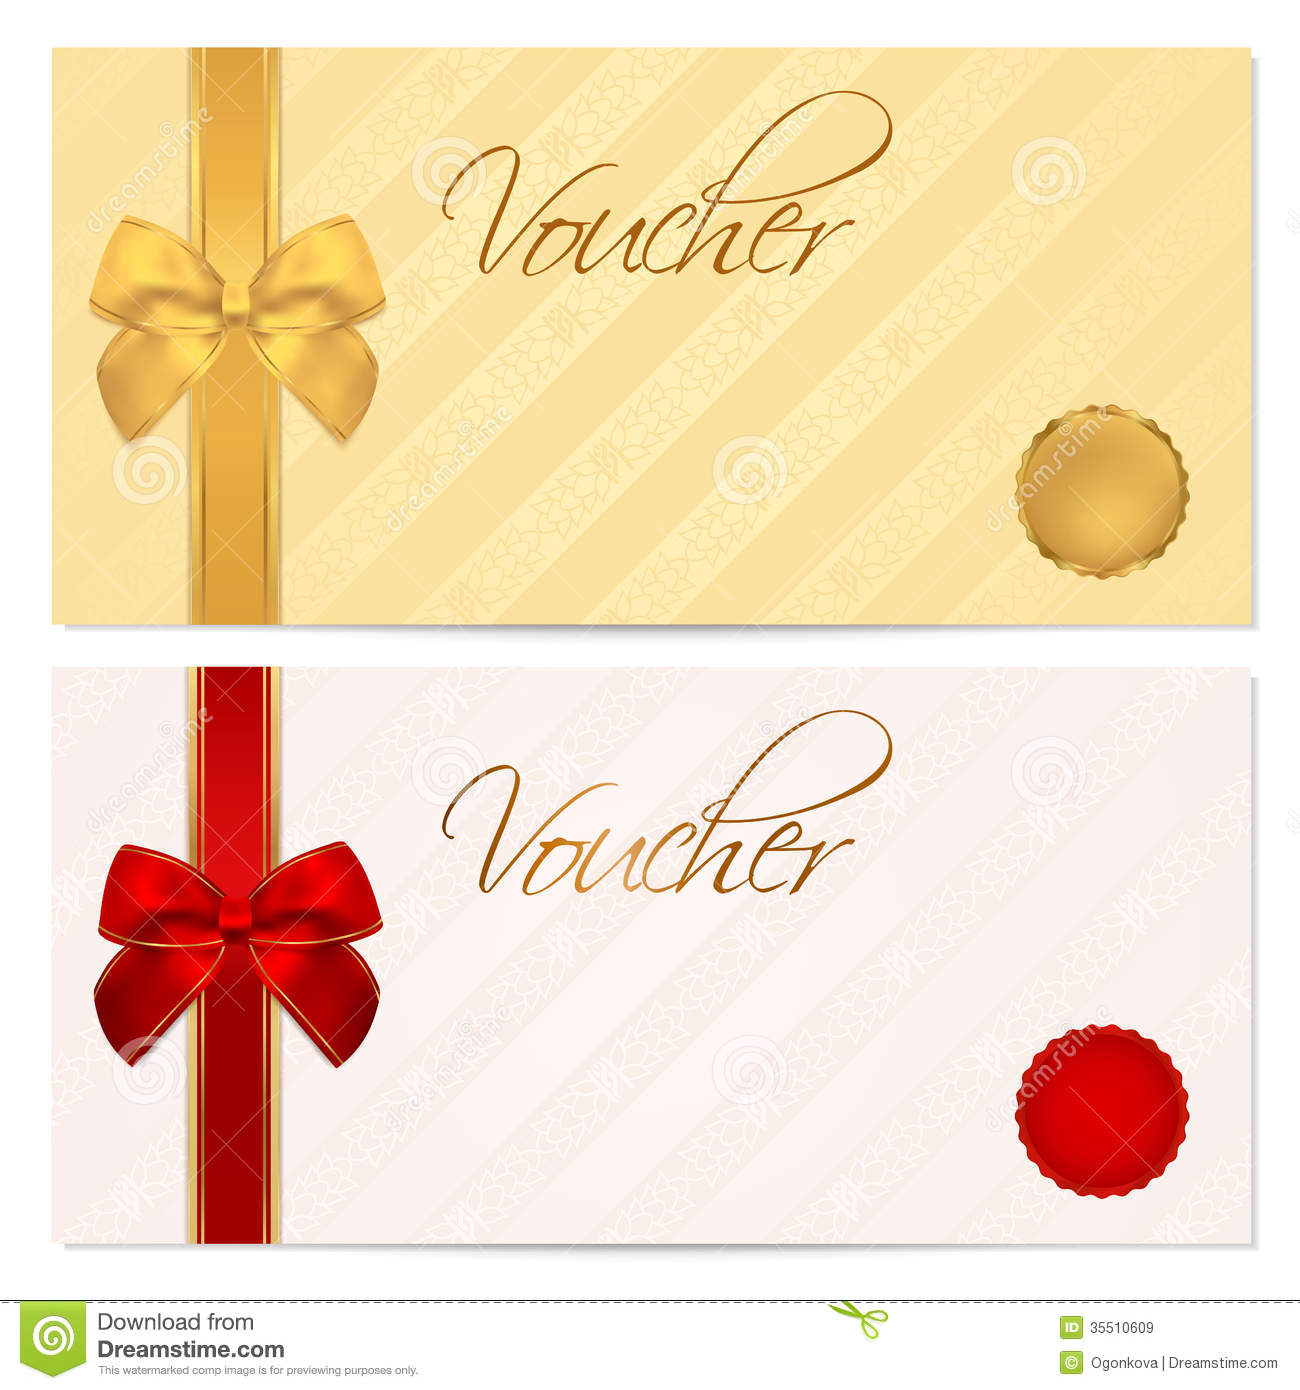 Gift Note Template. gift certificate template business plan ...